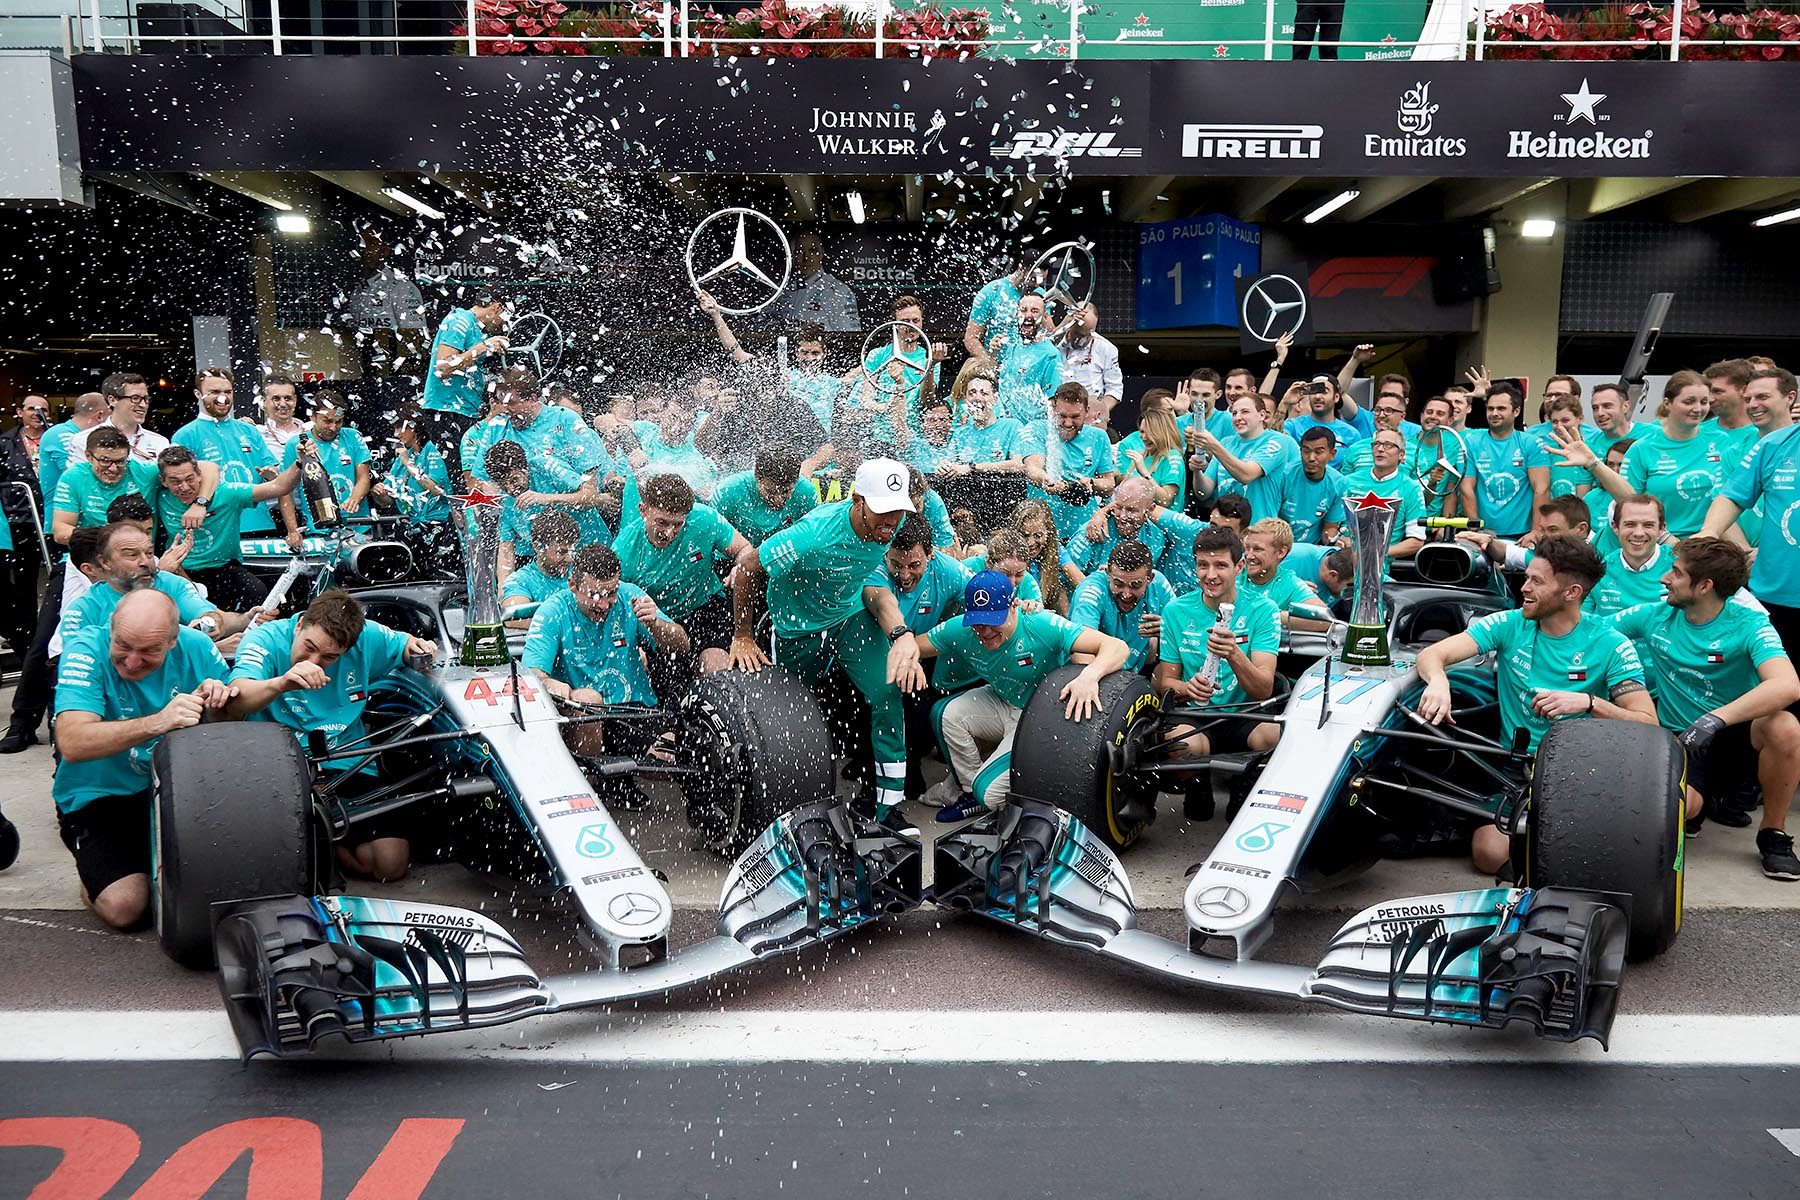 The Mercedes team celebrates the 2018 constructors world championship in Brazil.